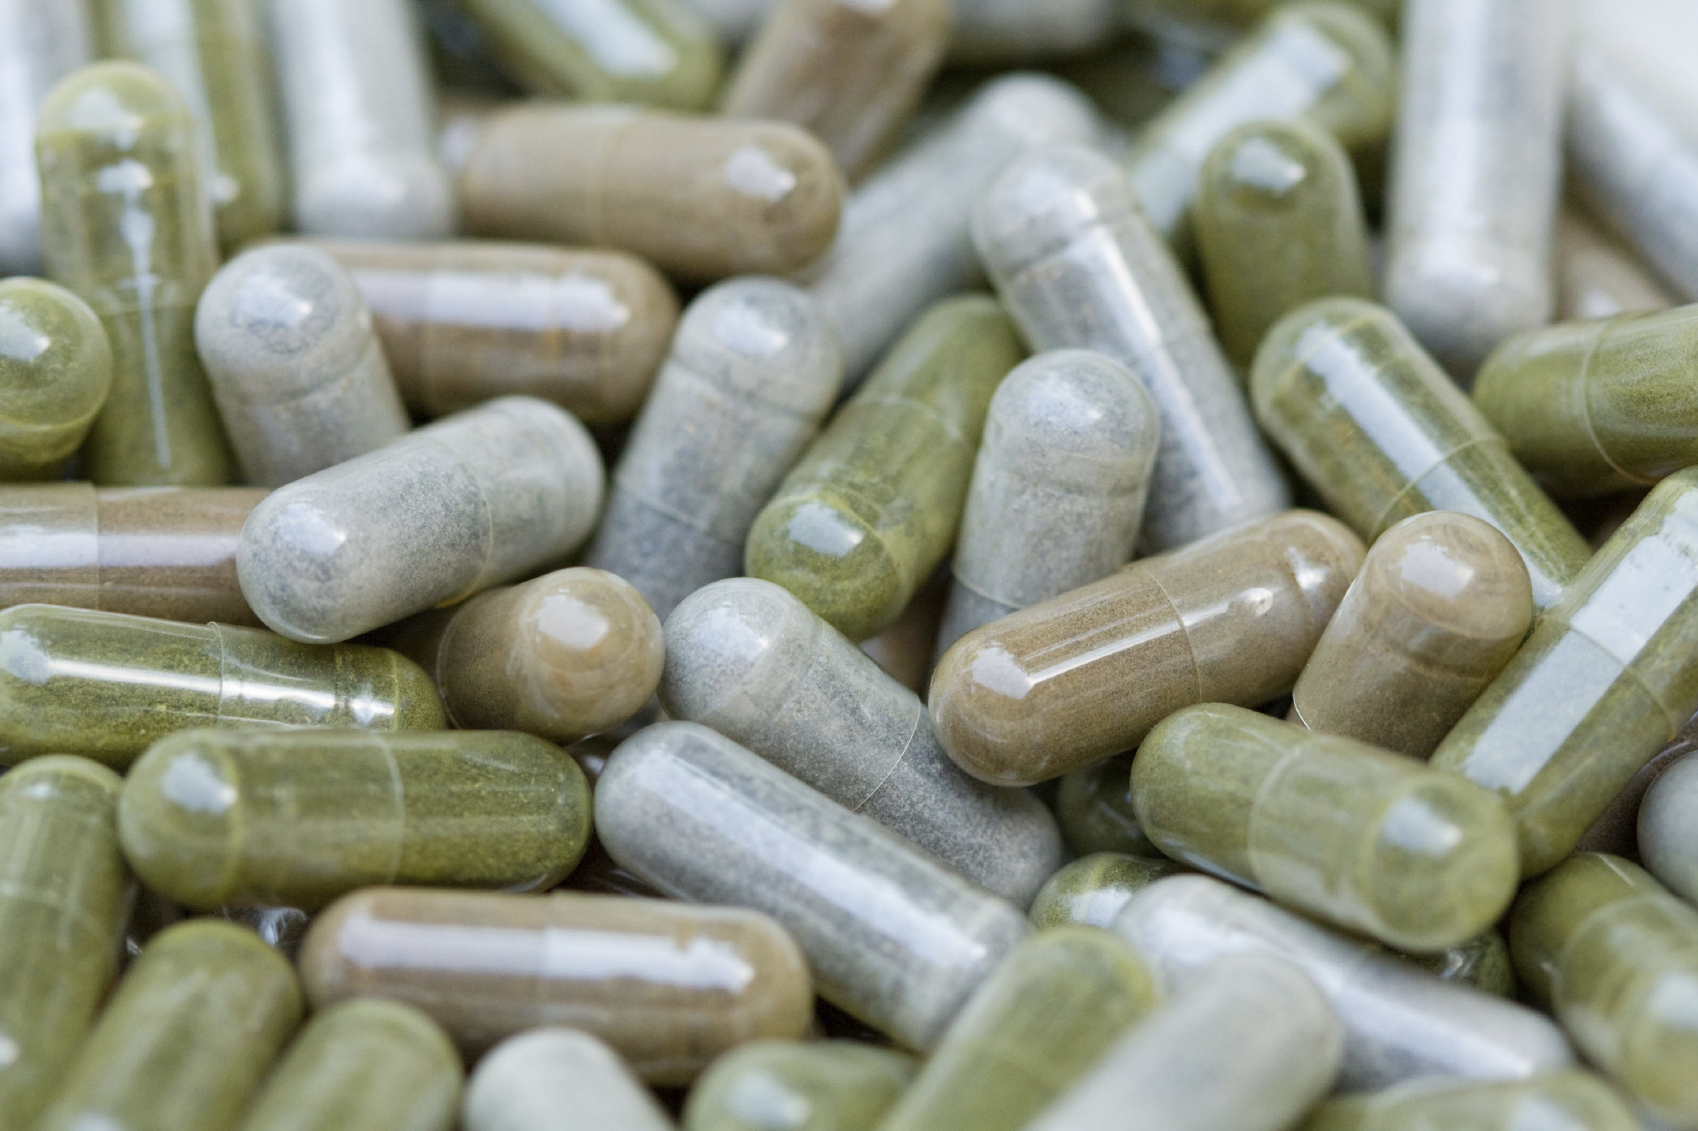 Harmful Effects Of Supplements Can Send You To The Emergency